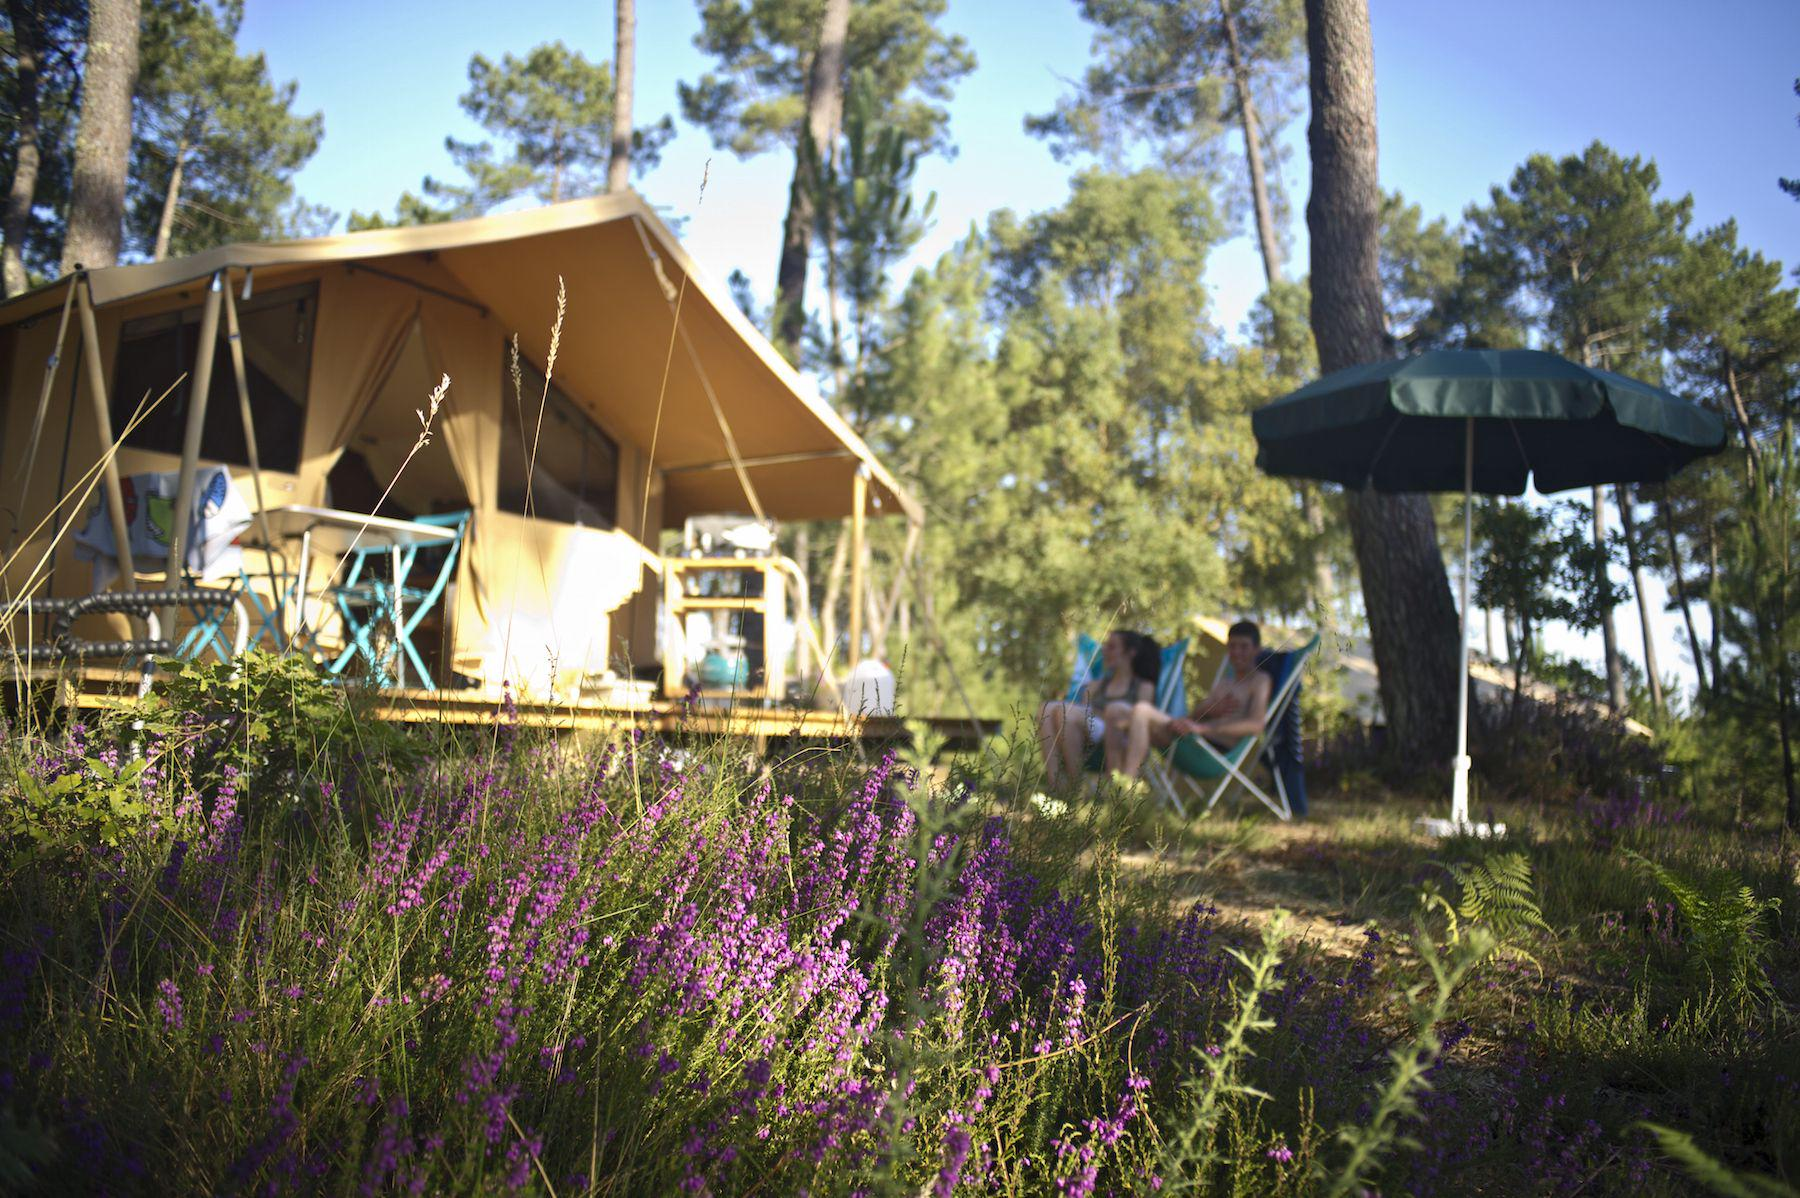 The Best Campsites in Landes - Cool Camping